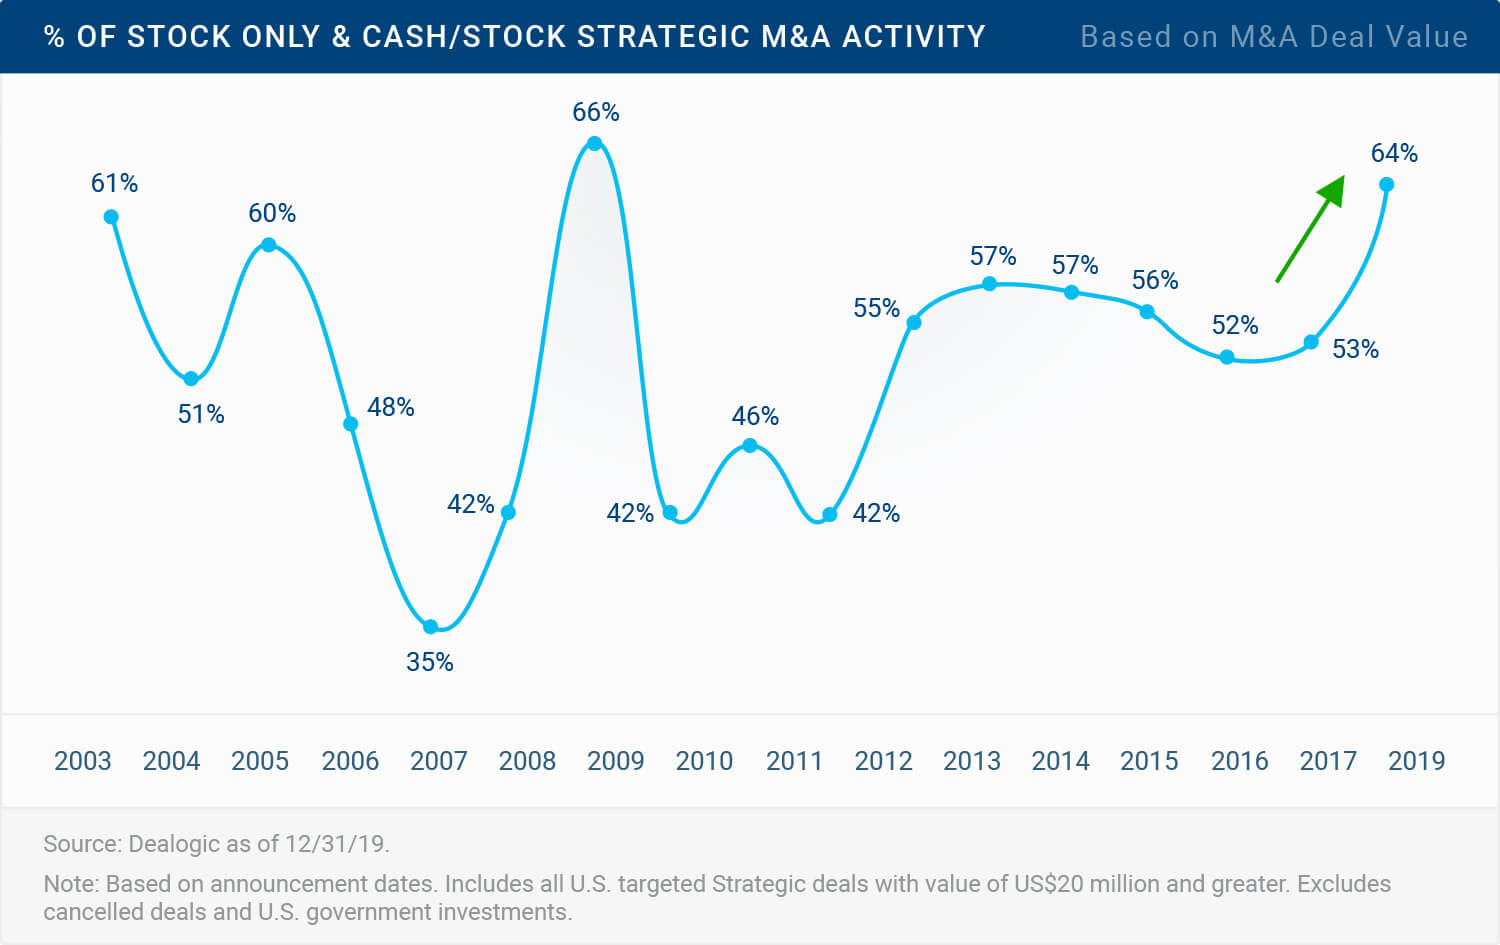 Percentage of Stock Only & Cash/Stock Strategic M&A Activity